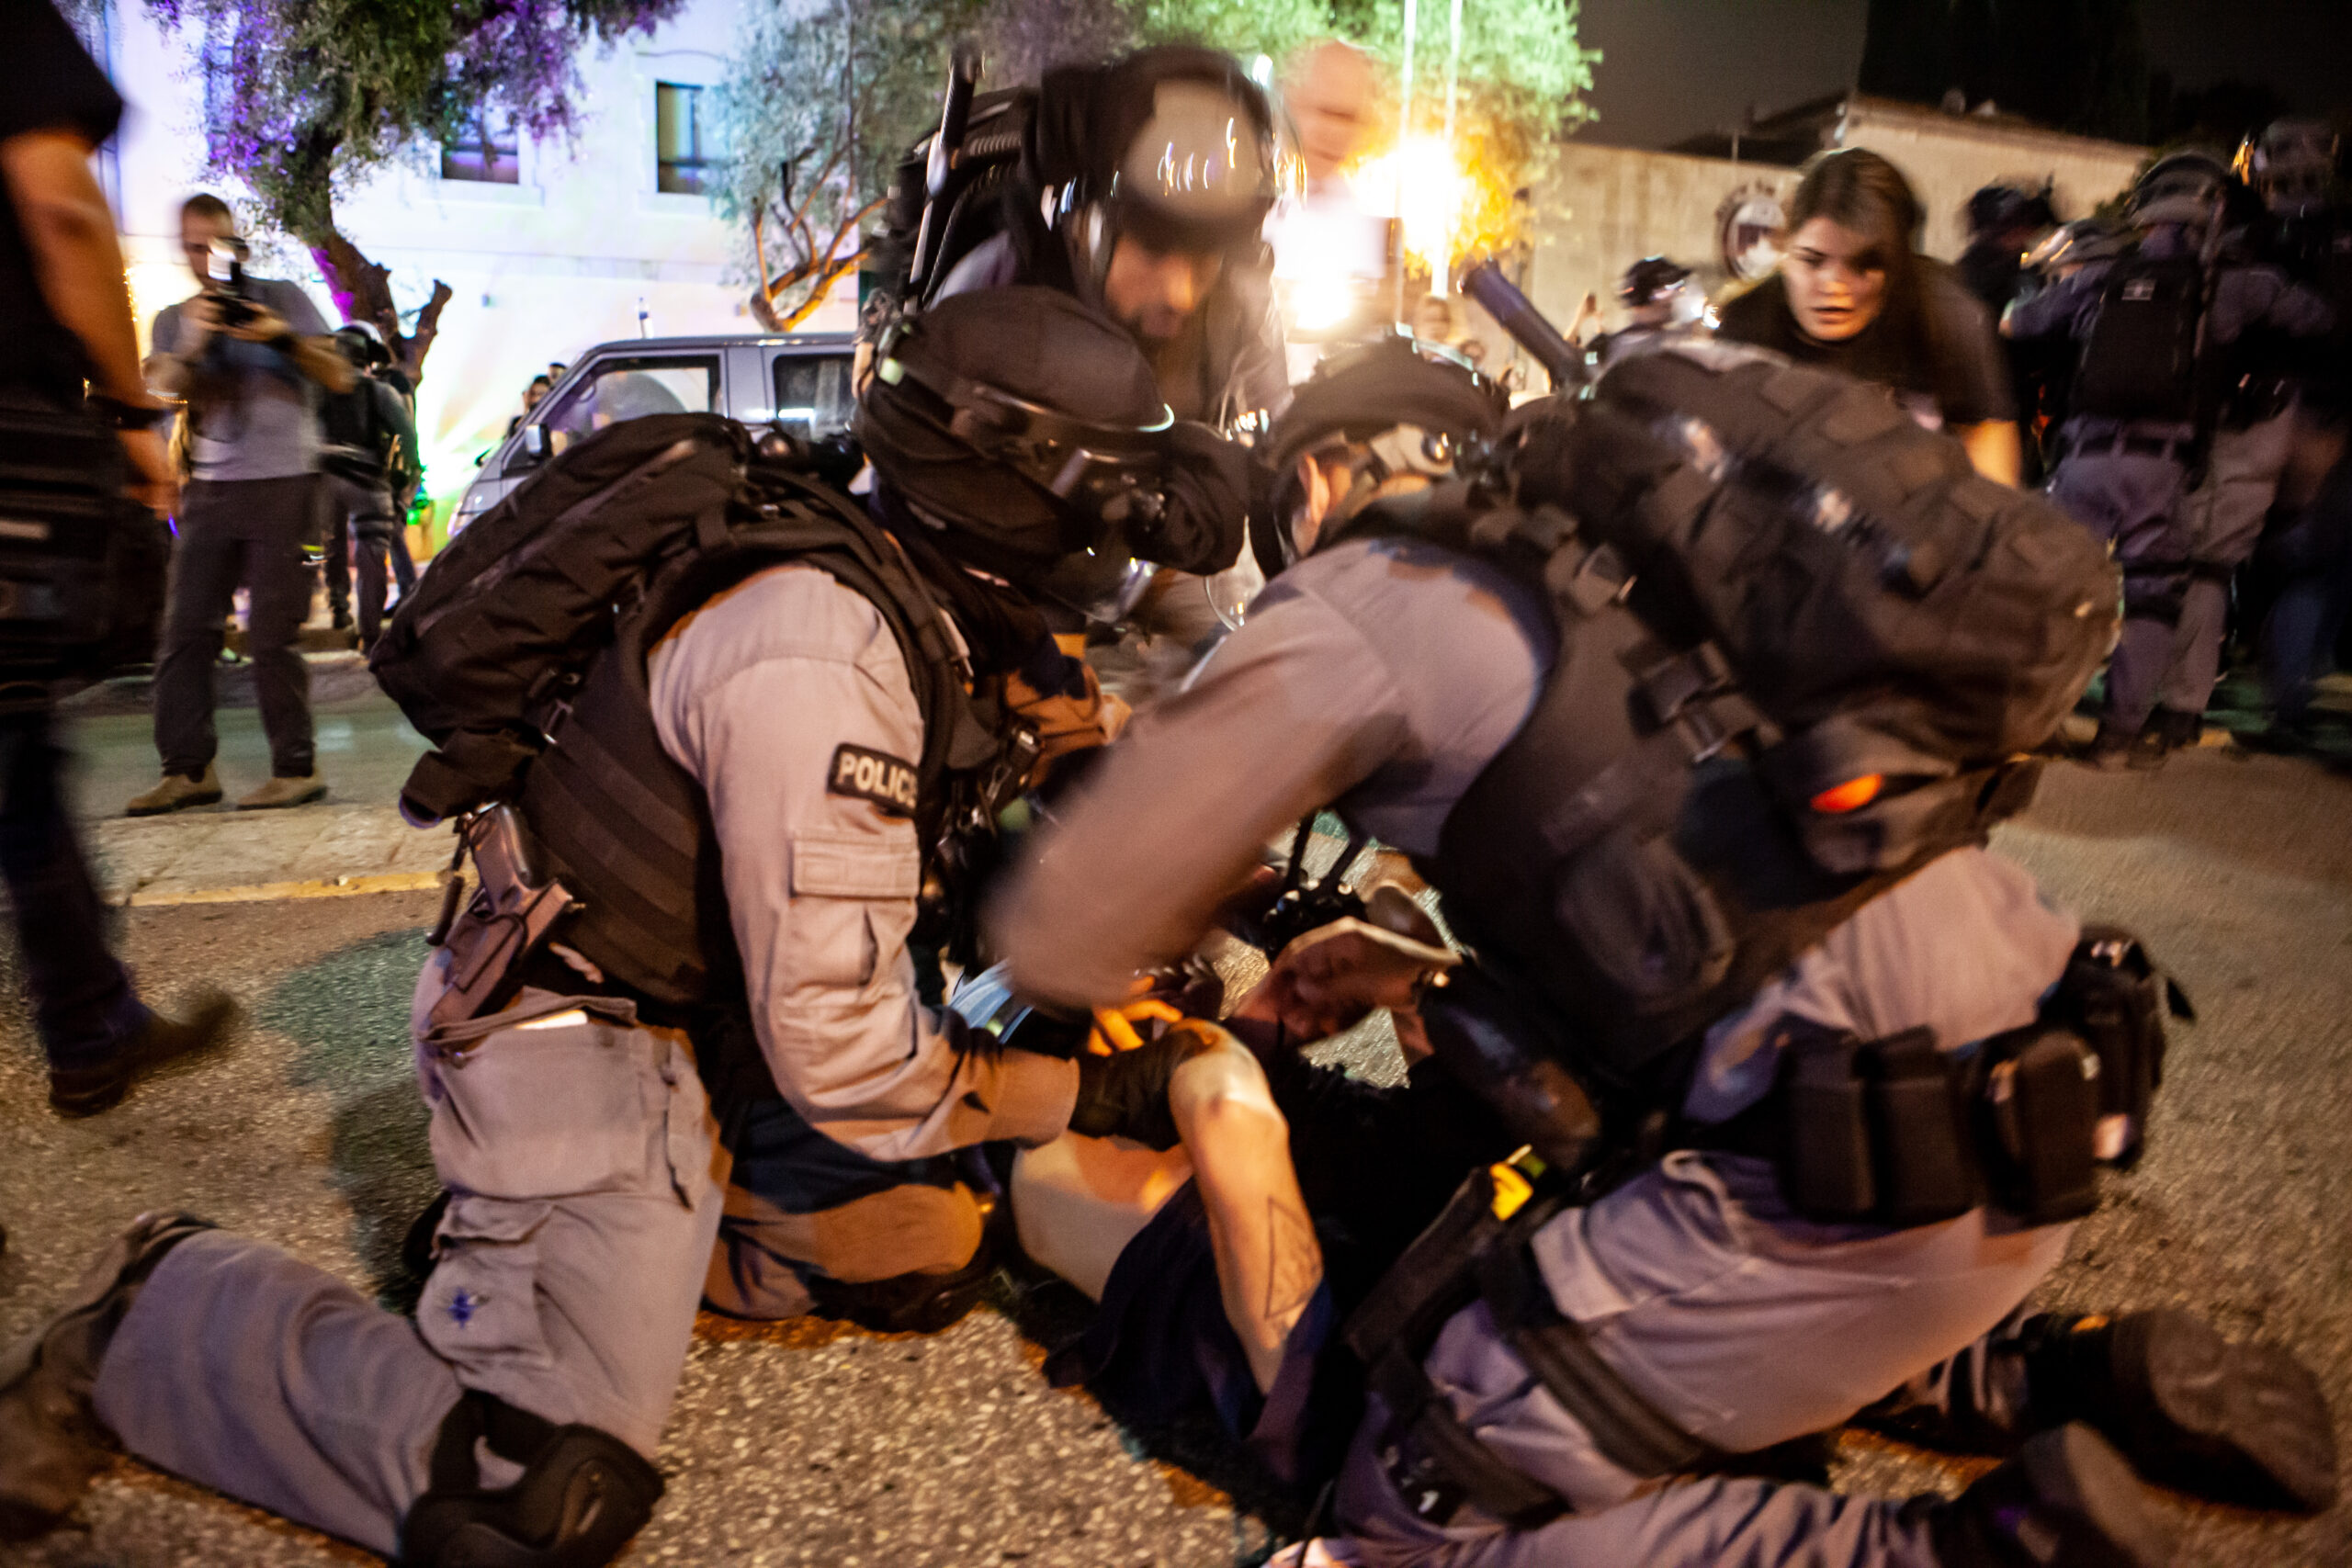 Israeli police targeted Palestinians with discriminatory arrests, torture and unlawful force